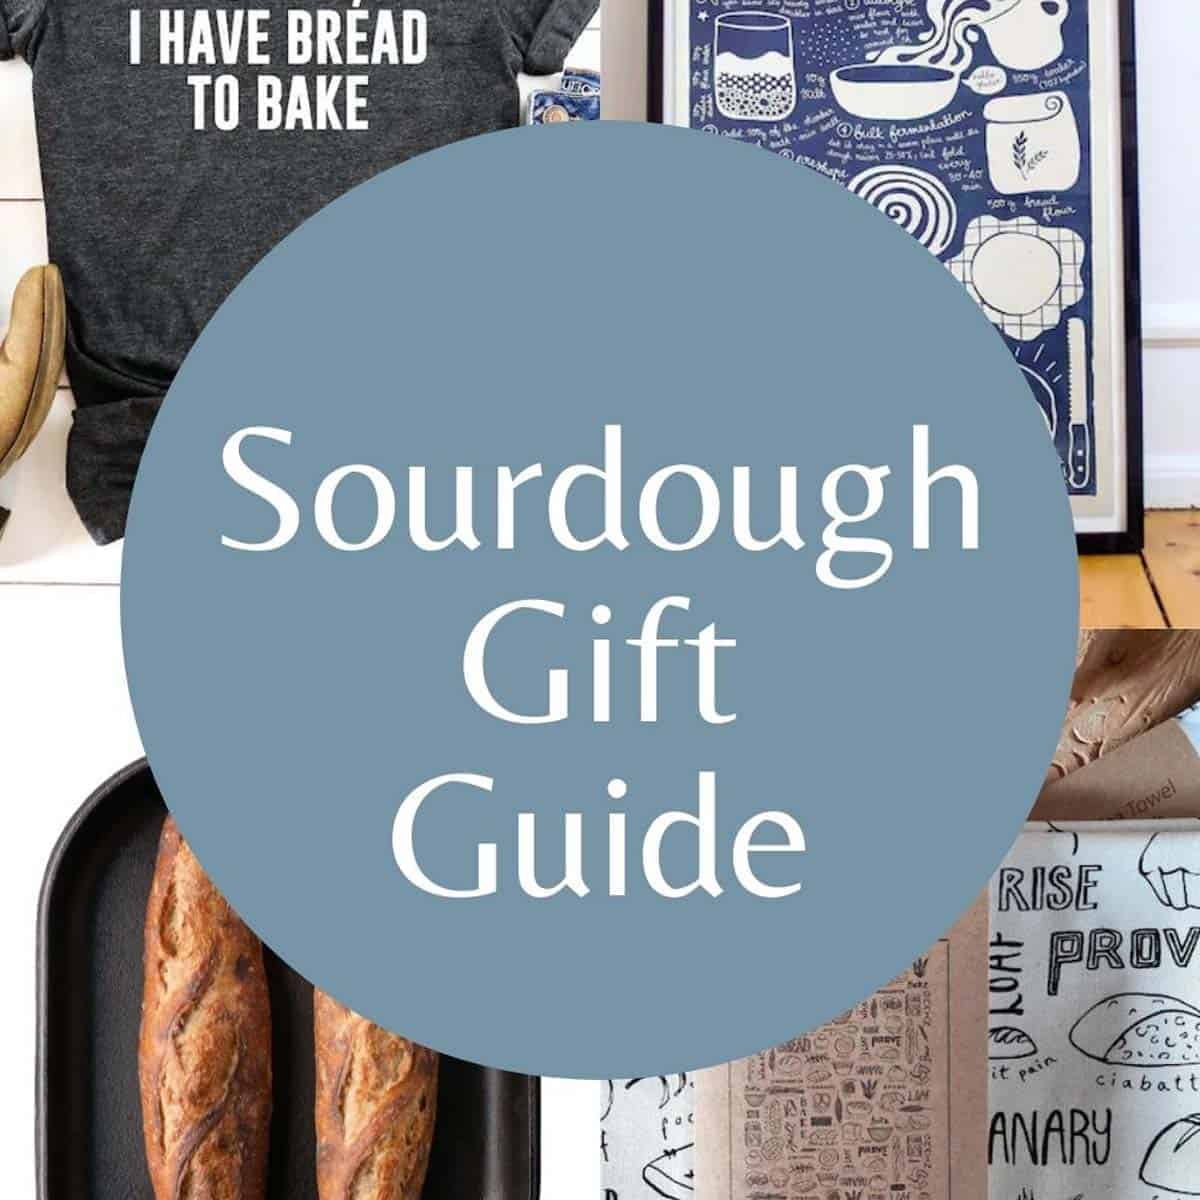 The Best Gifts for Sourdough Bakers